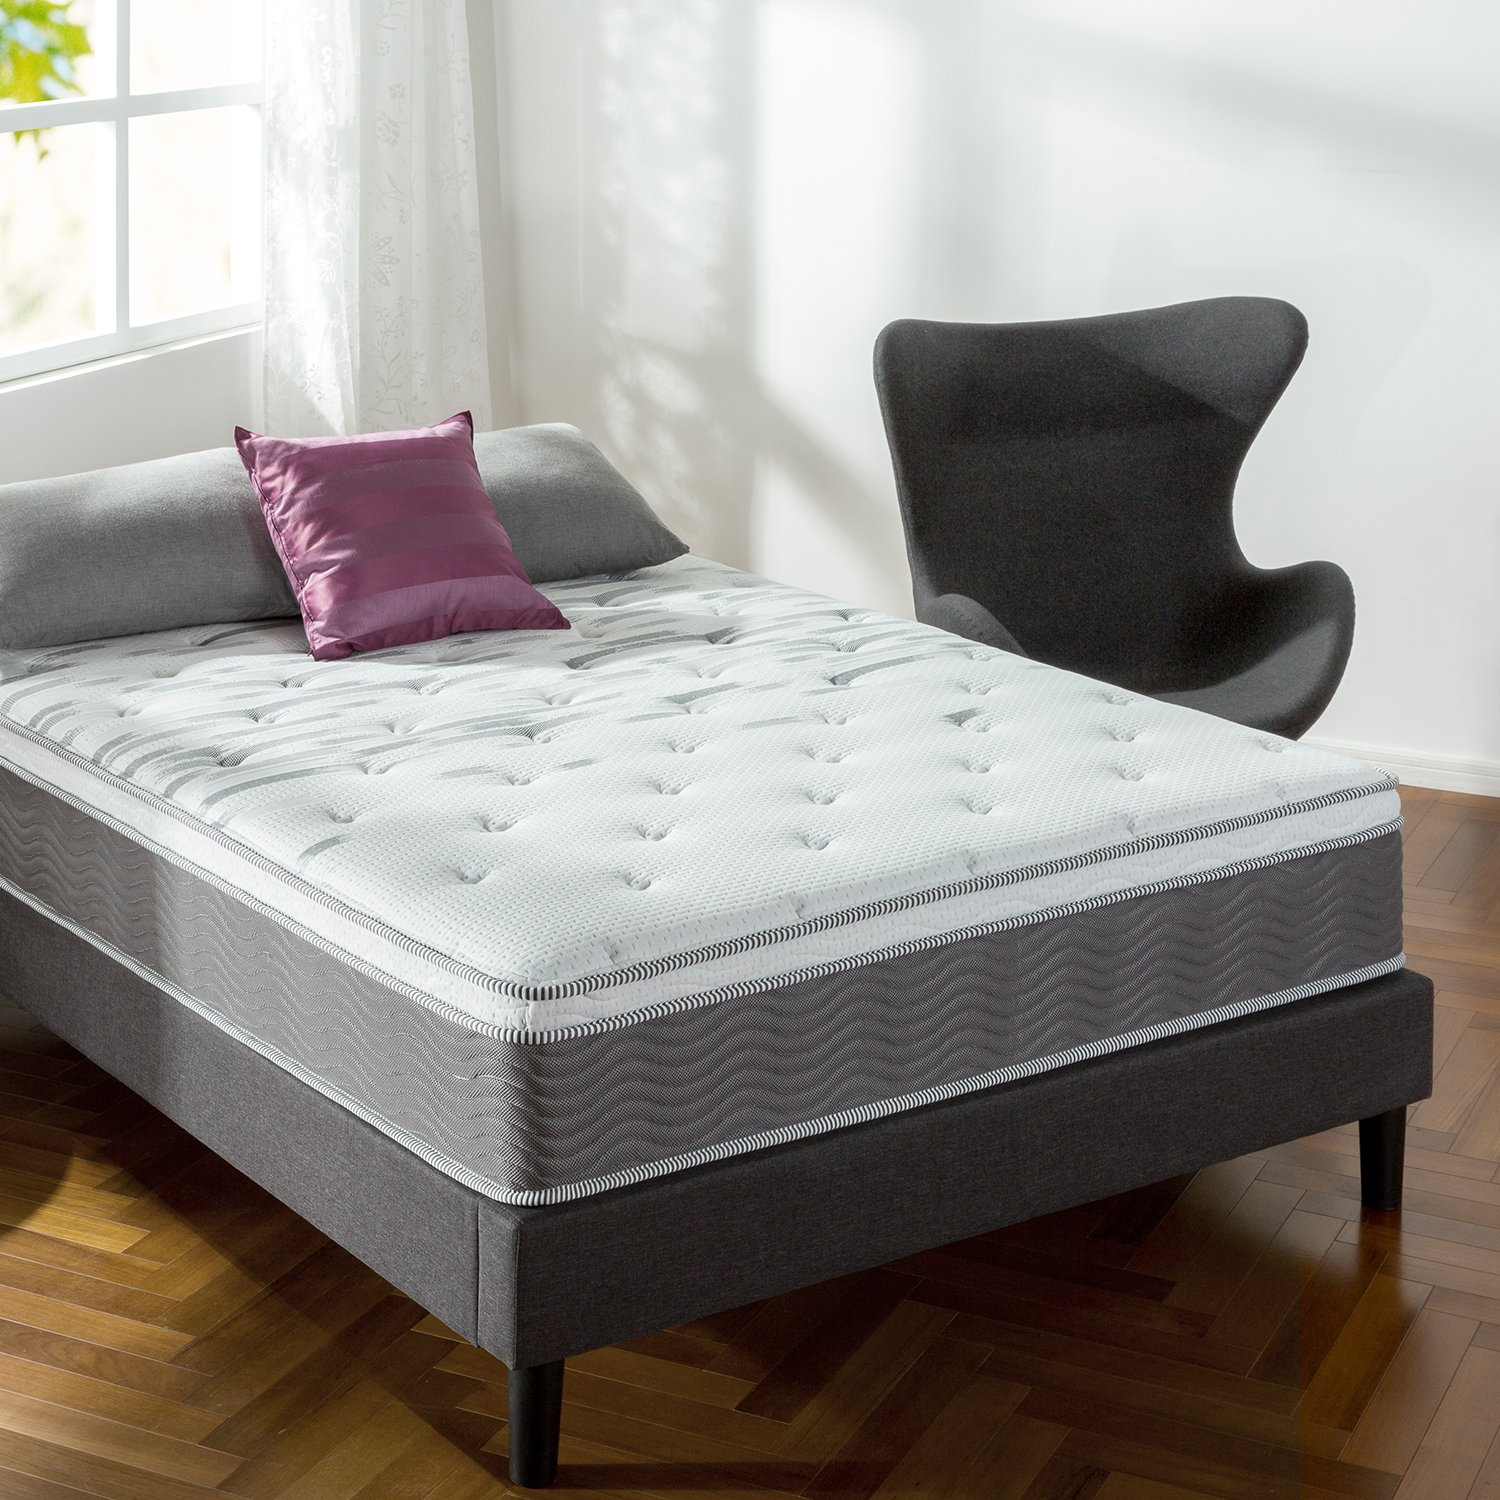 Zinus Extra Firm iCoil 12 Inch Support Plus Mattress, Queen by Zinus